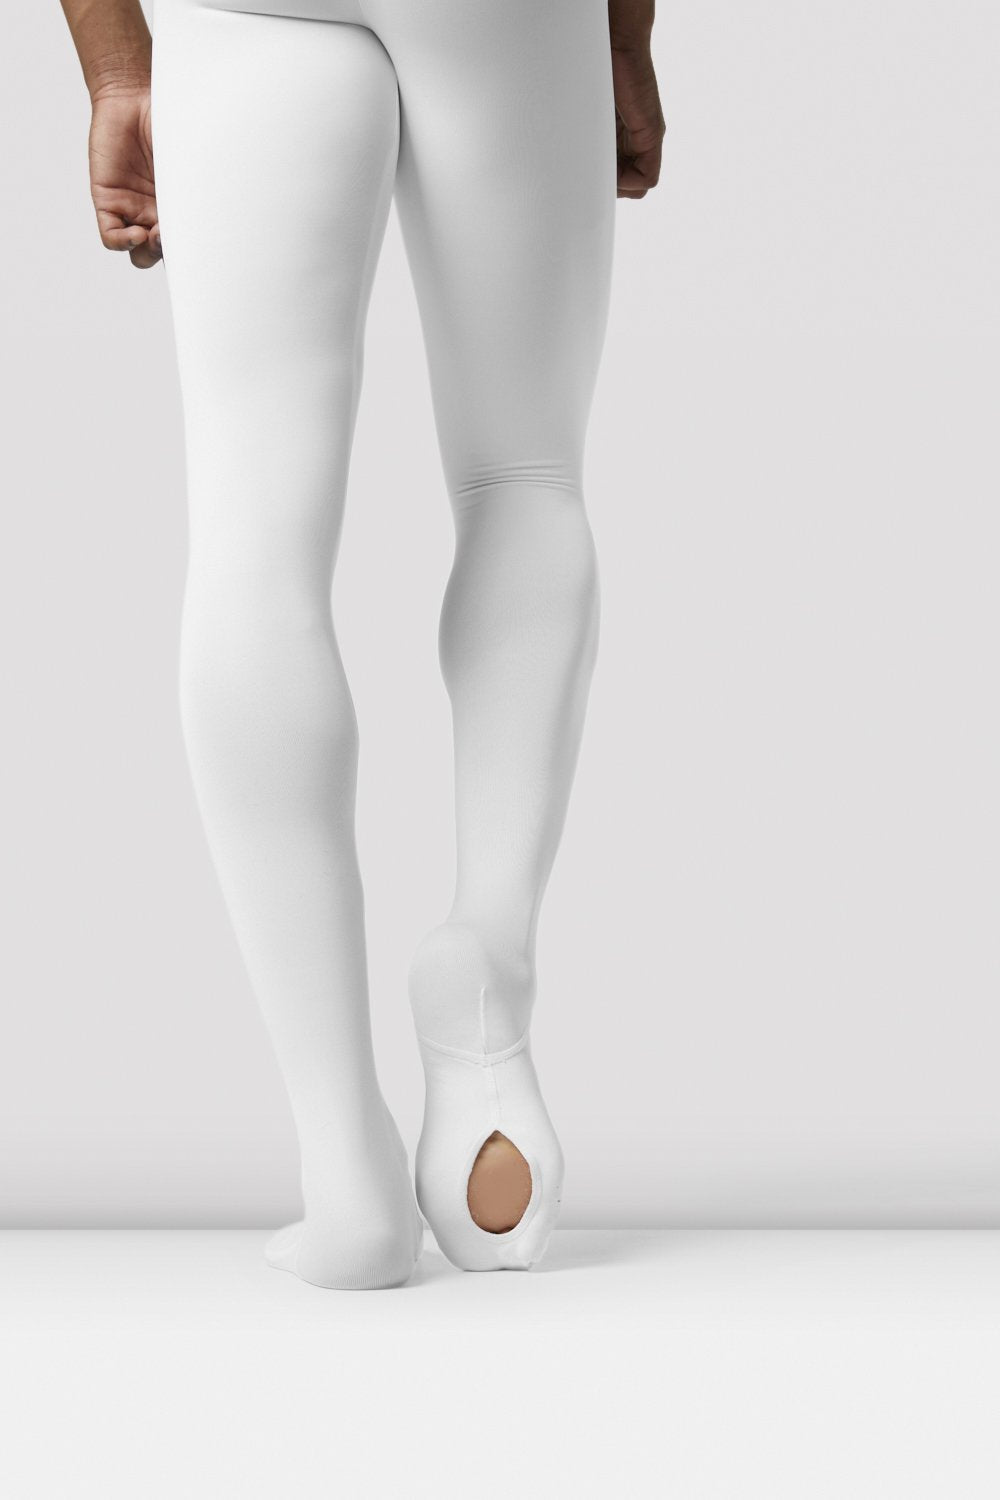 White Bloch Mens Performance Footed Dance Tight on male model facing back focus on sole of right foot